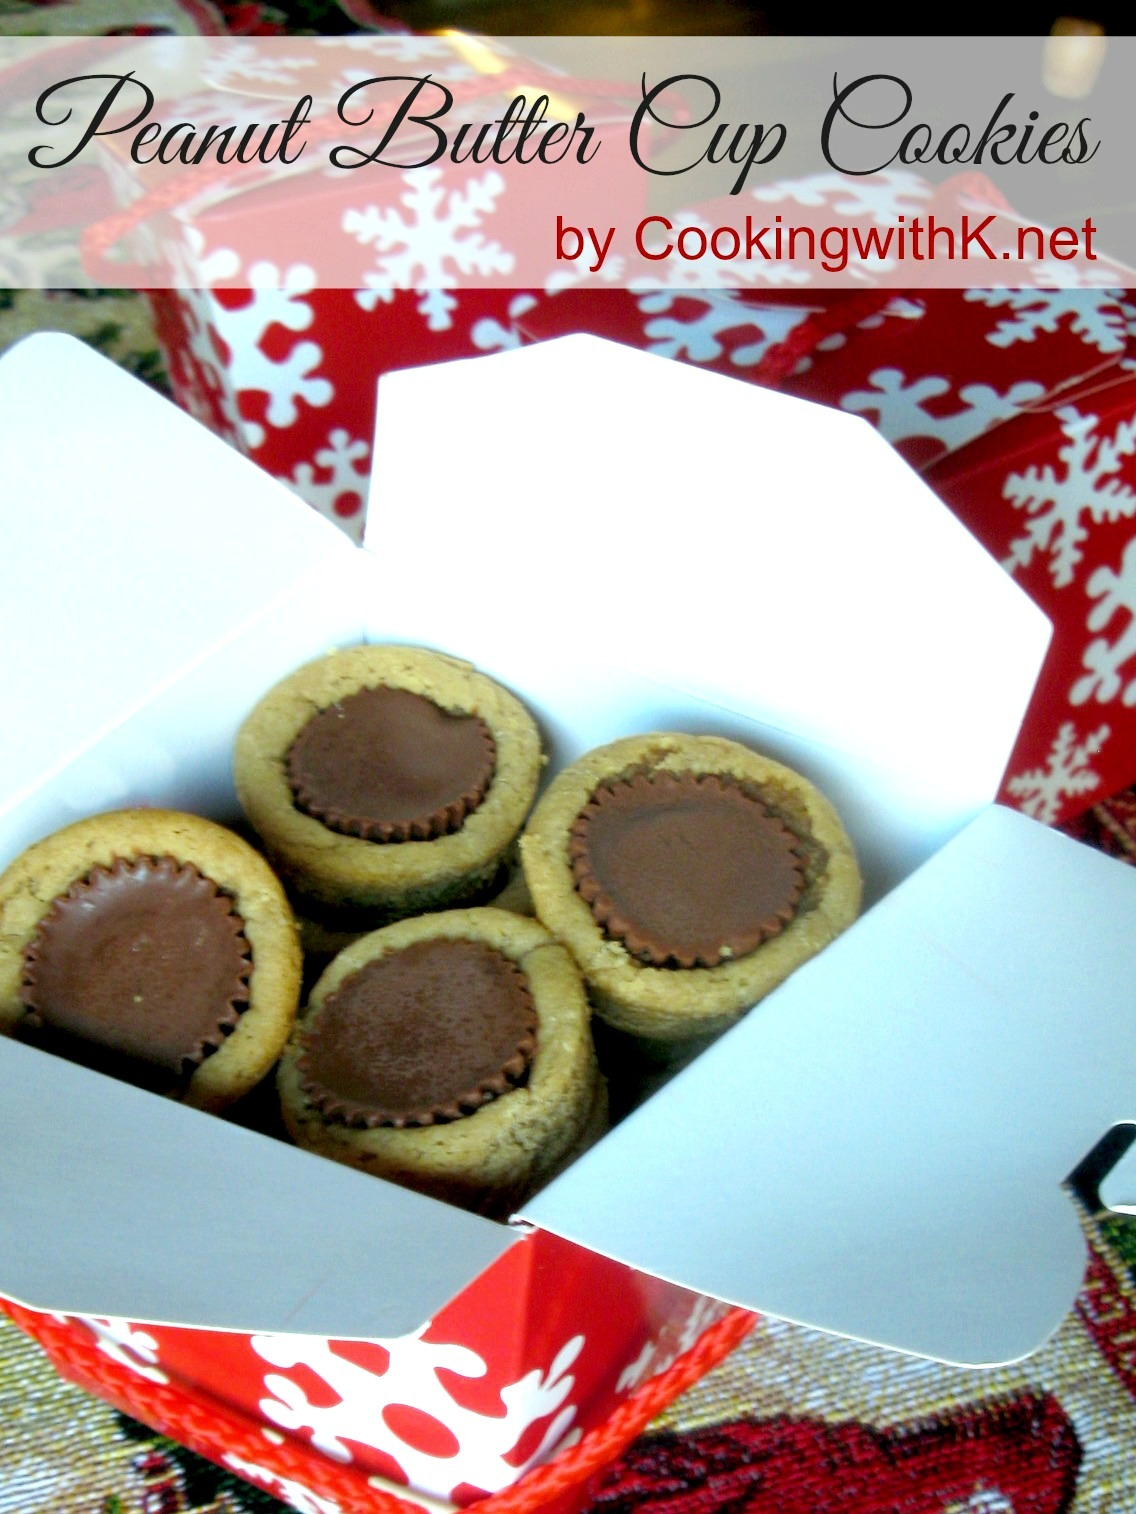 Cooking With K  Reese's Peanut Butter Cup Cookies Using Pillsbury